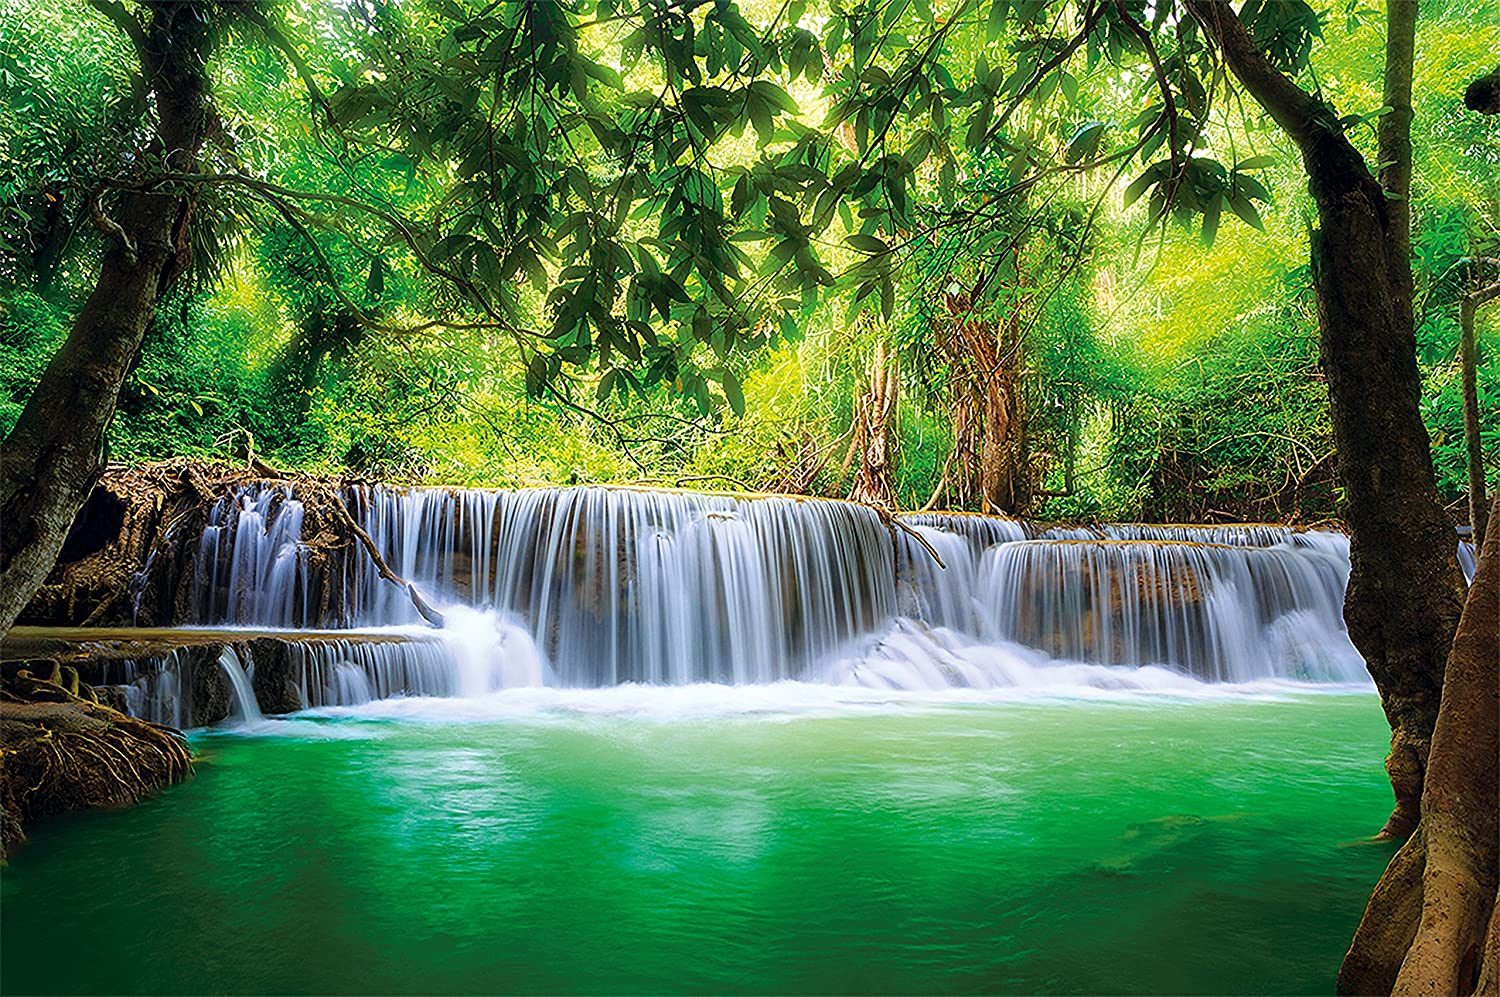 Great Art Wallpaper Feng Shui Paradise Waterfall Wall Picture Decoration Nature in Thailand Asia Wellness Spa Wall Decor (132.3 x 93.7 Inch)